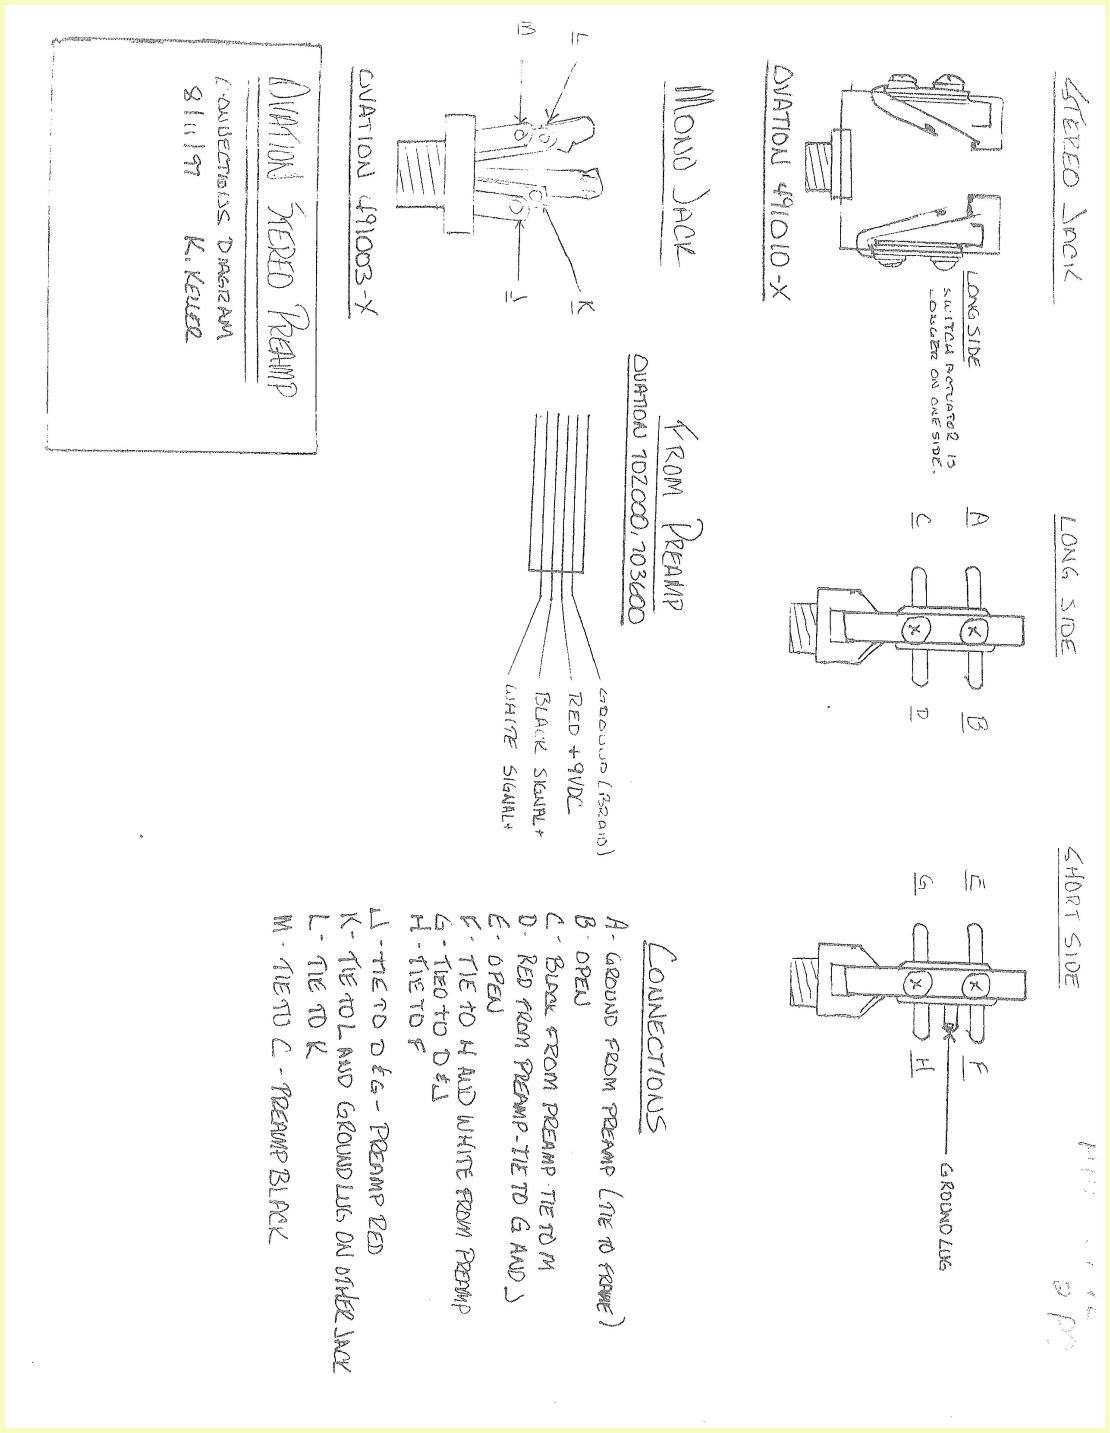 camera schematic, power schematic, stereo jack diagram, stereo jack symbol, toggle switch schematic, stereo mini jack, stereo jack soldering, microphone schematic, stereo phone jack wiring, dimmer switch schematic, keyboard schematic, wire schematic, dpdt switch schematic, usb cable schematic, usb connection schematic, stereo headset with microphone wiring diagram, stereo jack datasheet, bluetooth schematic, usb port schematic, on stereo jack schematic